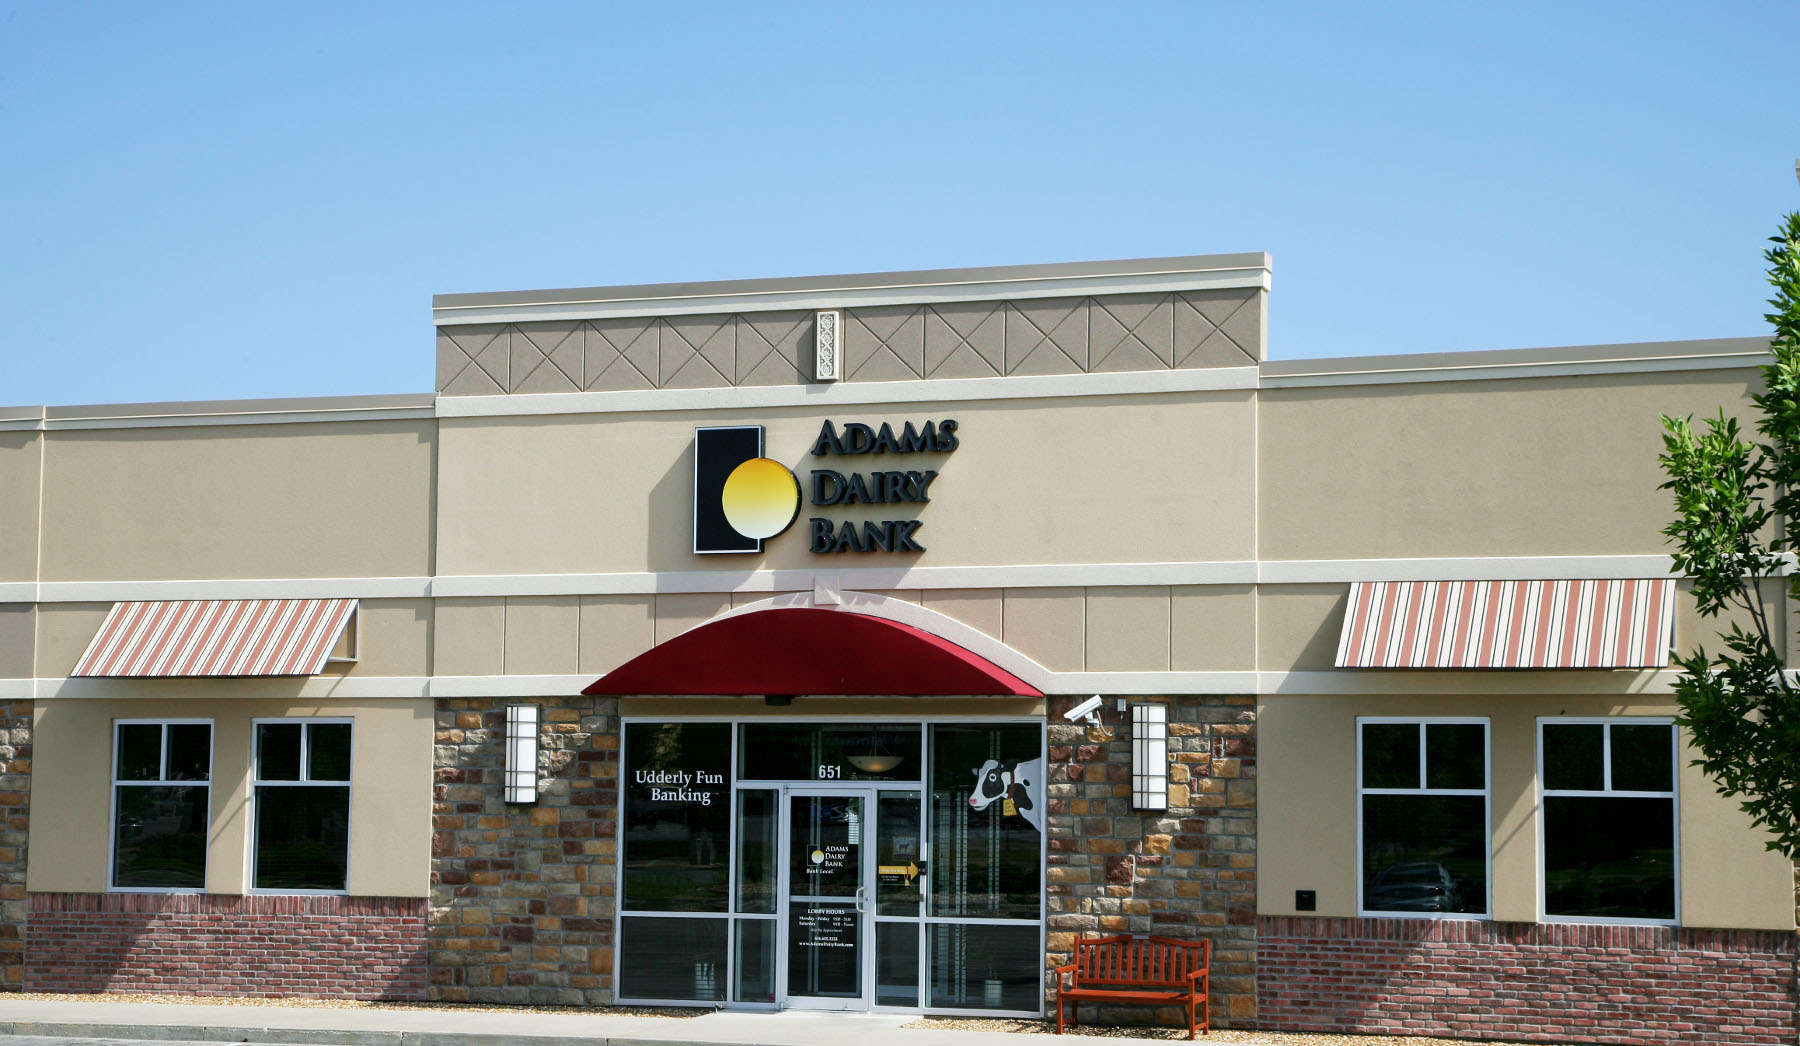 Adams Dairy Bank to Merge With Another Entrepreneurial Bank